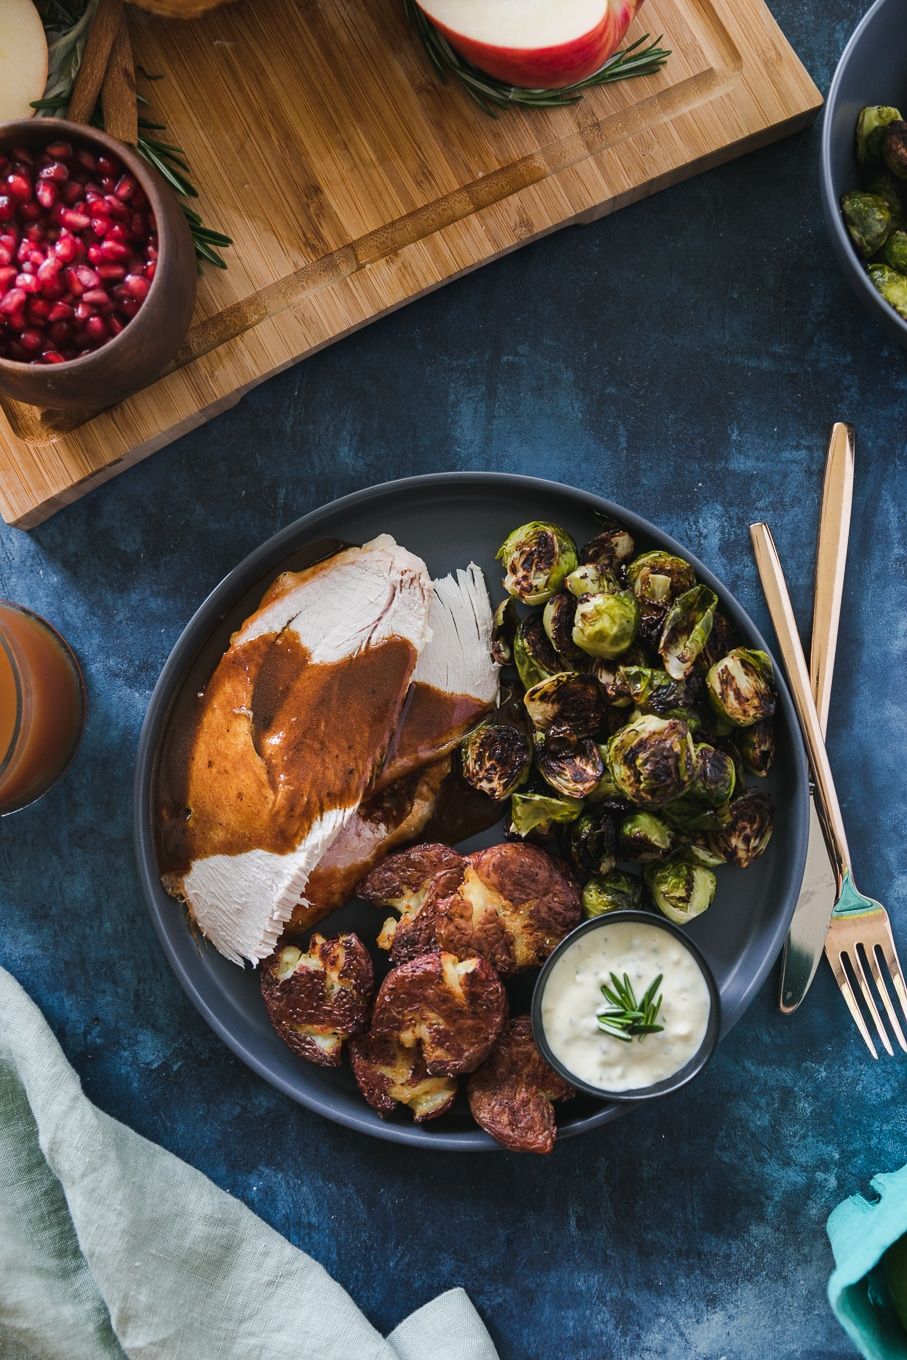 Overhead shot of a plate with turkey and gravy, roasted brussels, roasted smashed potatoes, and aioli against a blue background